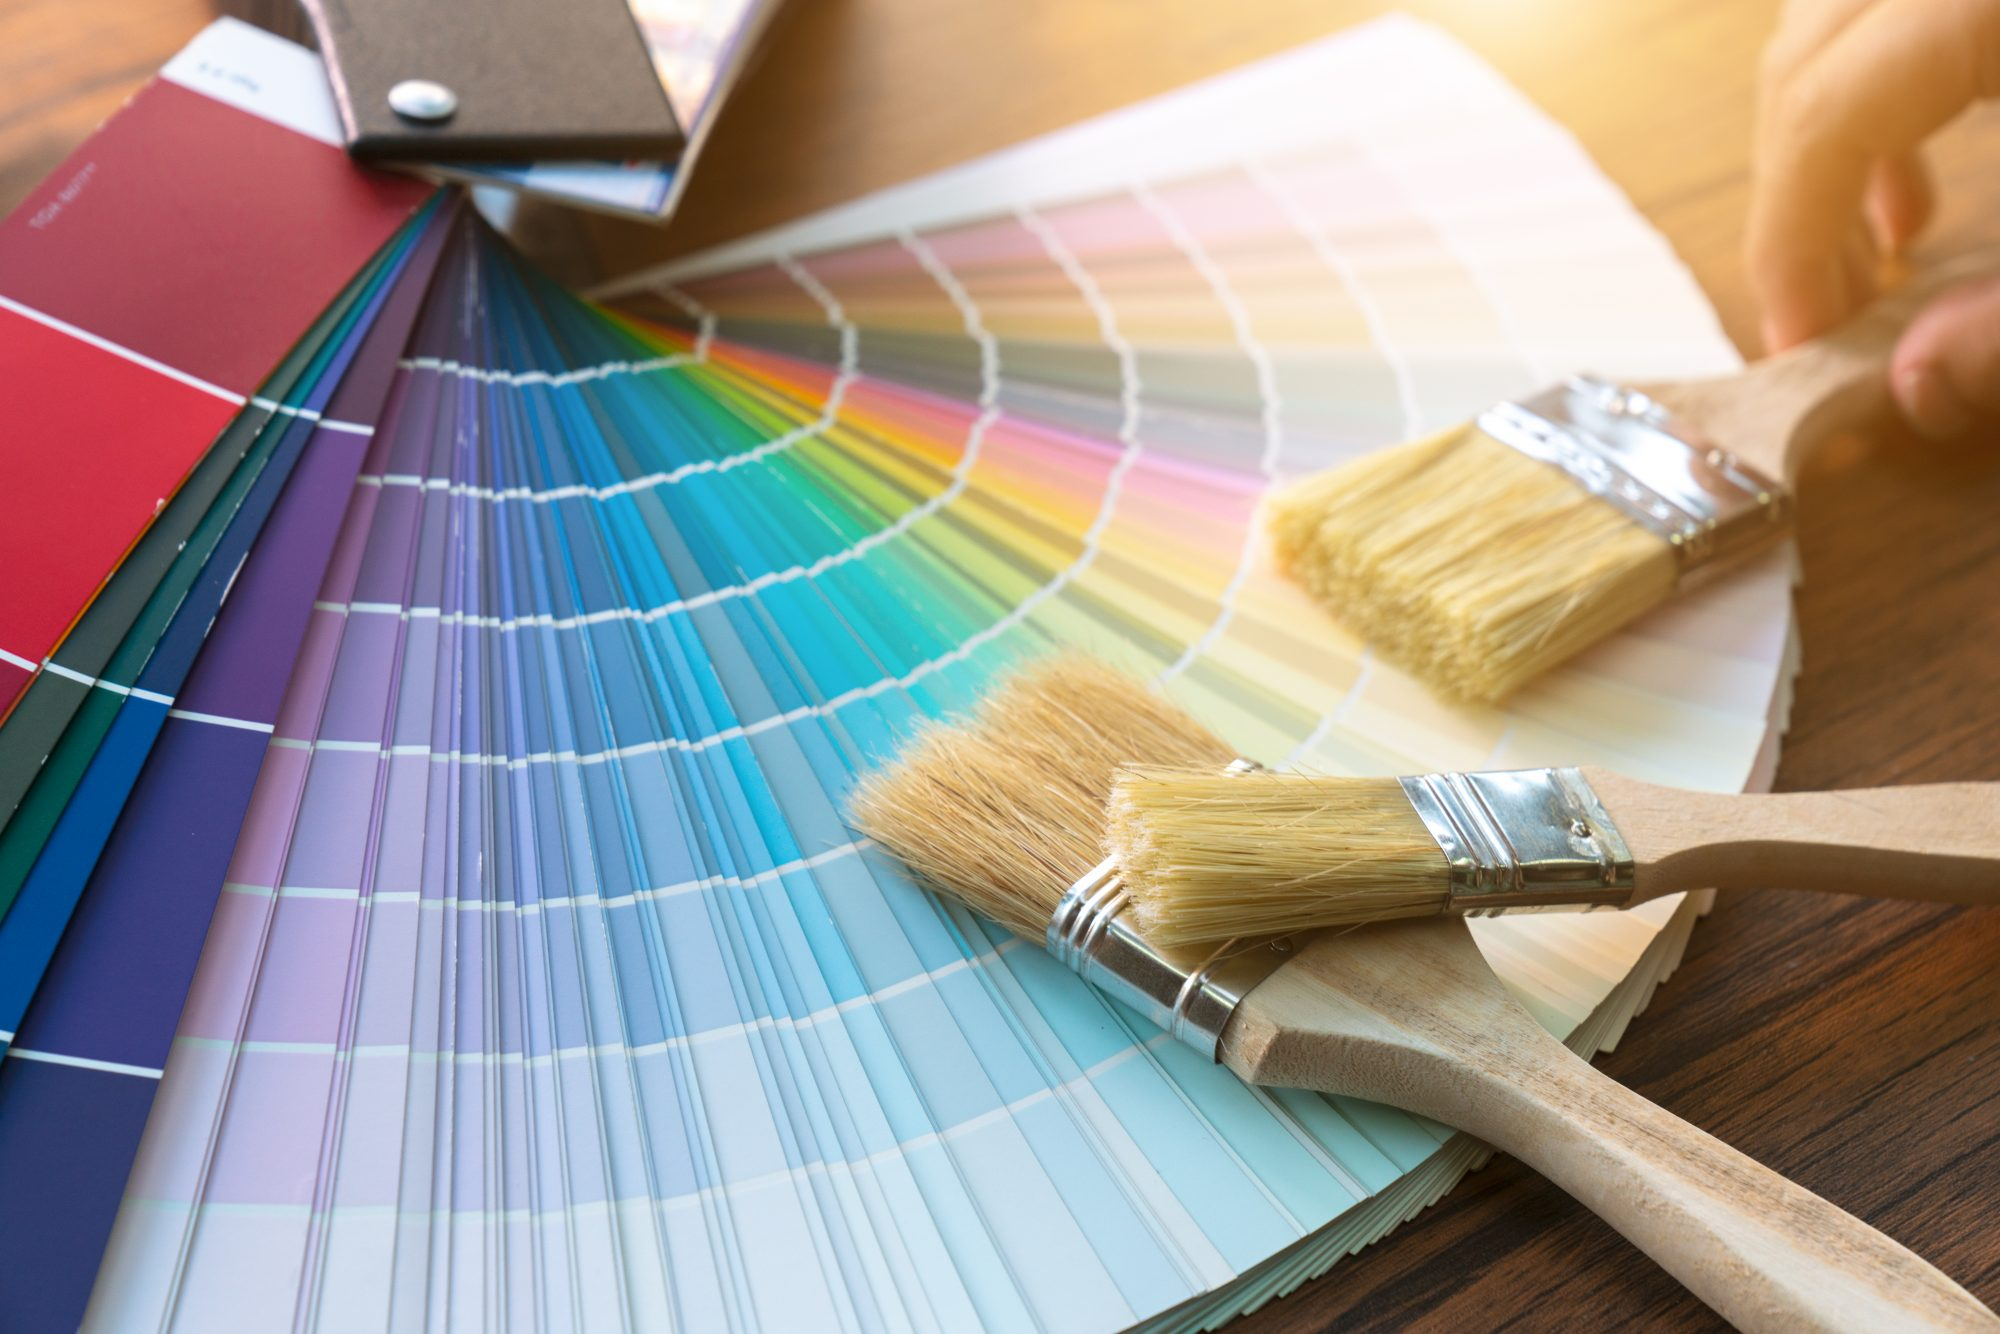 Paint Color Swatches and Brushes